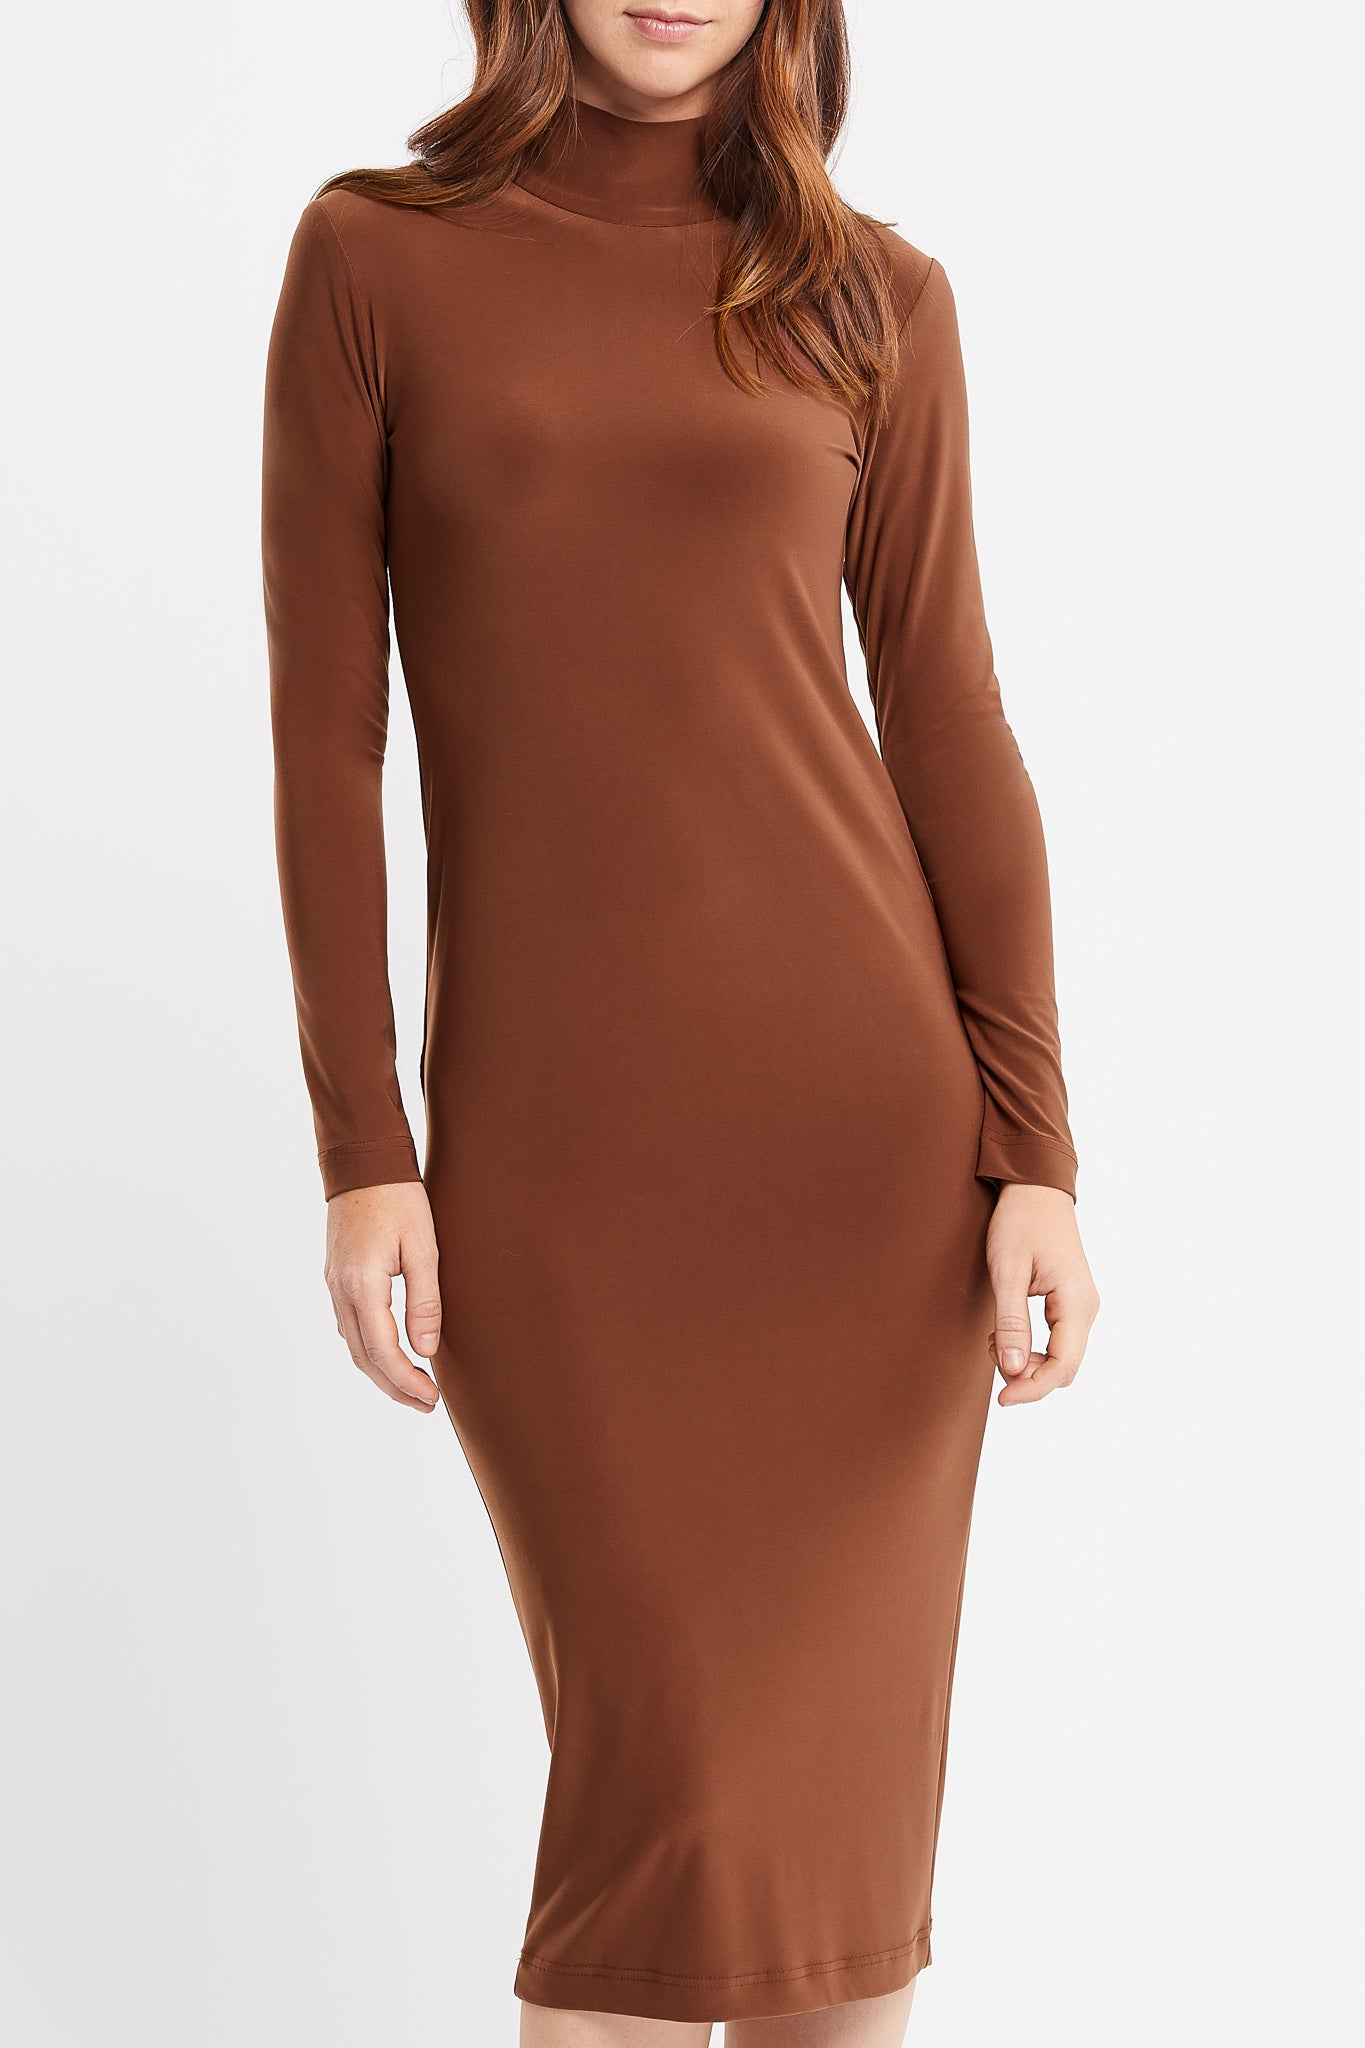 Hanne Long Sleeve Day Dress in Camel